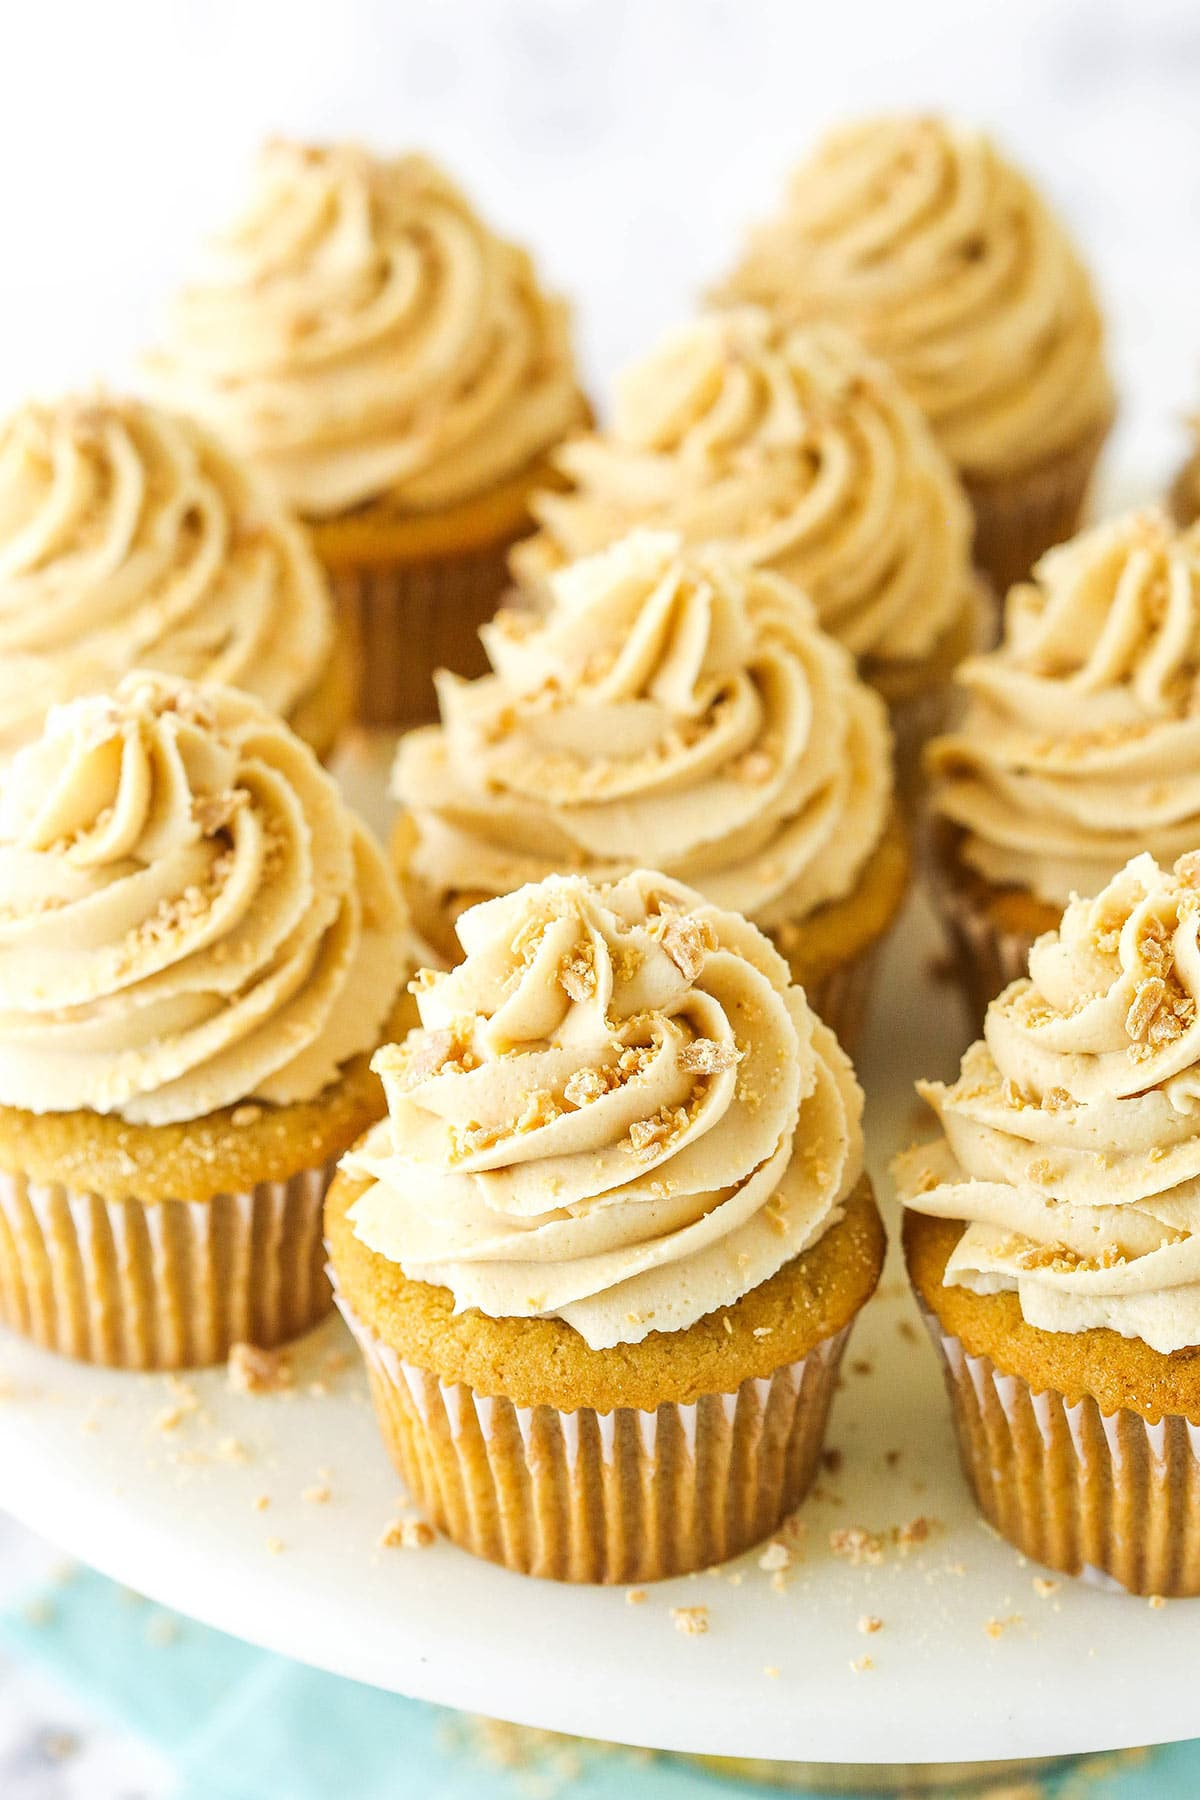 Peanut butter cupcakes with peanut butter frosting and crushed peanut butter chips on top